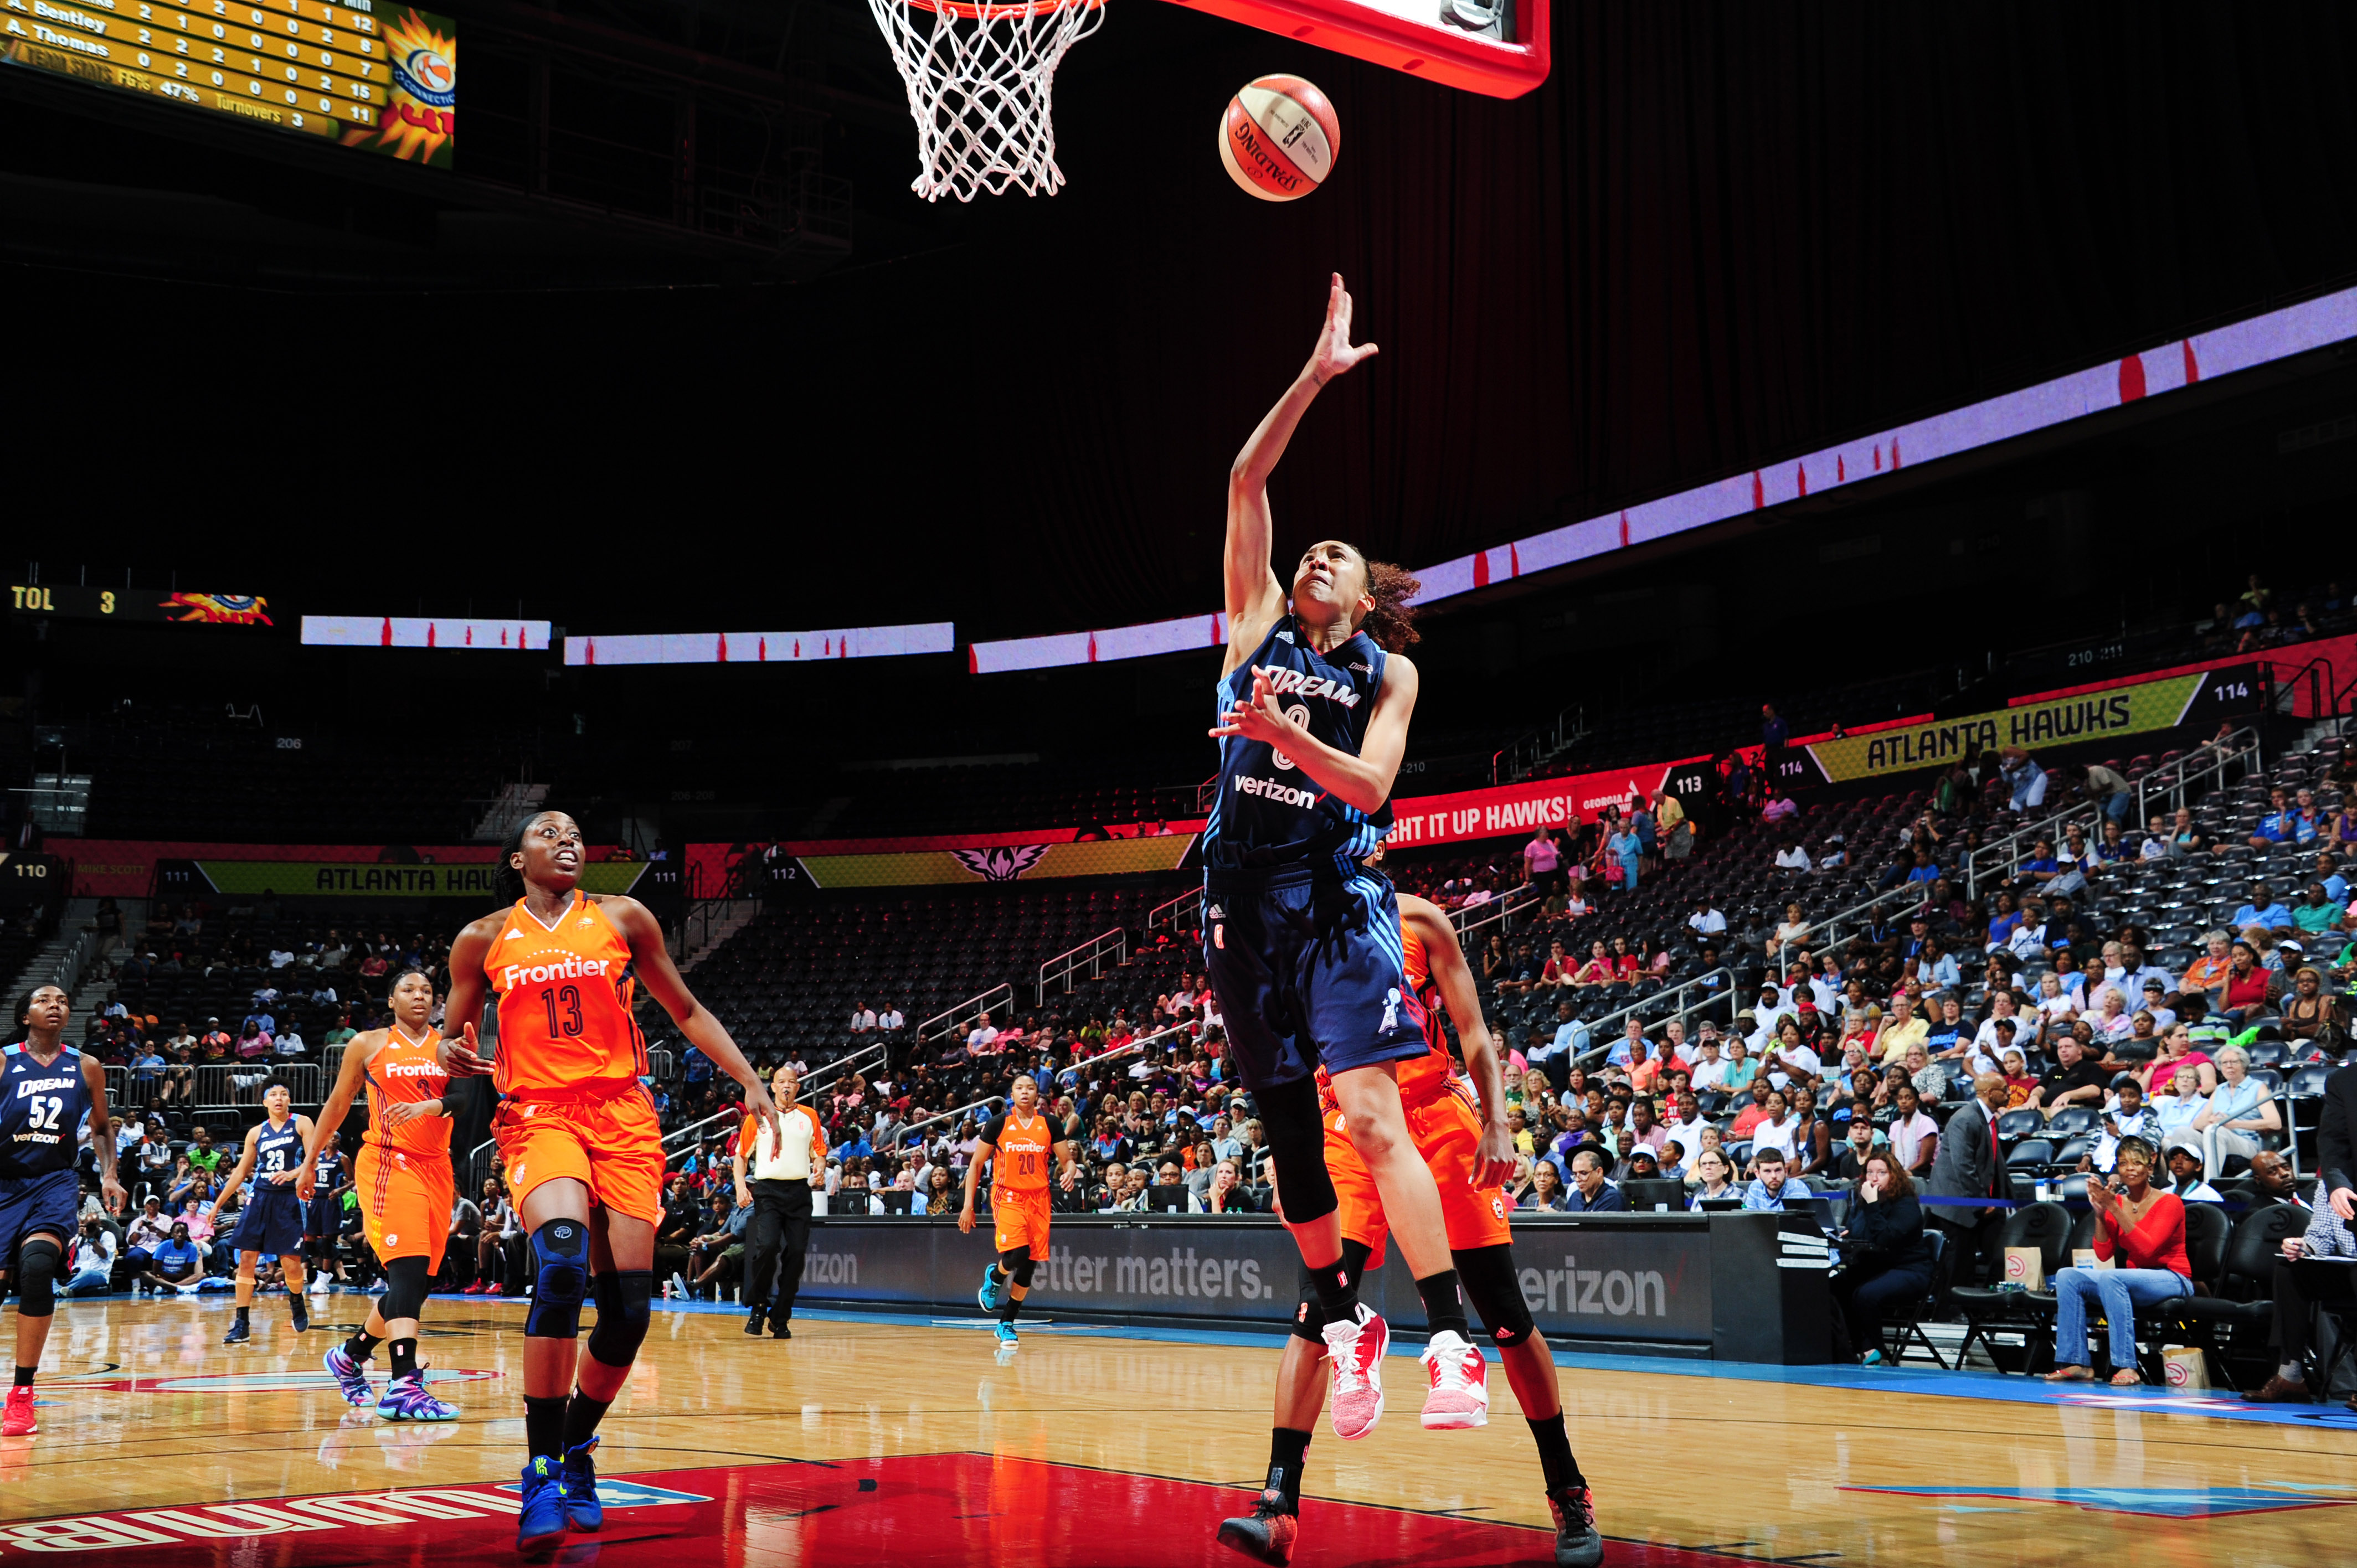 ATLANTA, GA - JUNE 12: Meighan Simmons #0 of the Atlanta Dream shoots against the Connecticut Sun during the game on June 12, 2016 at Philips Arena in Atlanta, Georgia. NOTE TO USER: User expressly acknowledges and agrees that, by downloading and or using this Photograph, user is consenting to the terms and conditions of the Getty Images License Agreement. Mandatory Copyright Notice: Copyright 2016 NBAE (Photo by Scott Cunningham/NBAE via Getty Images)